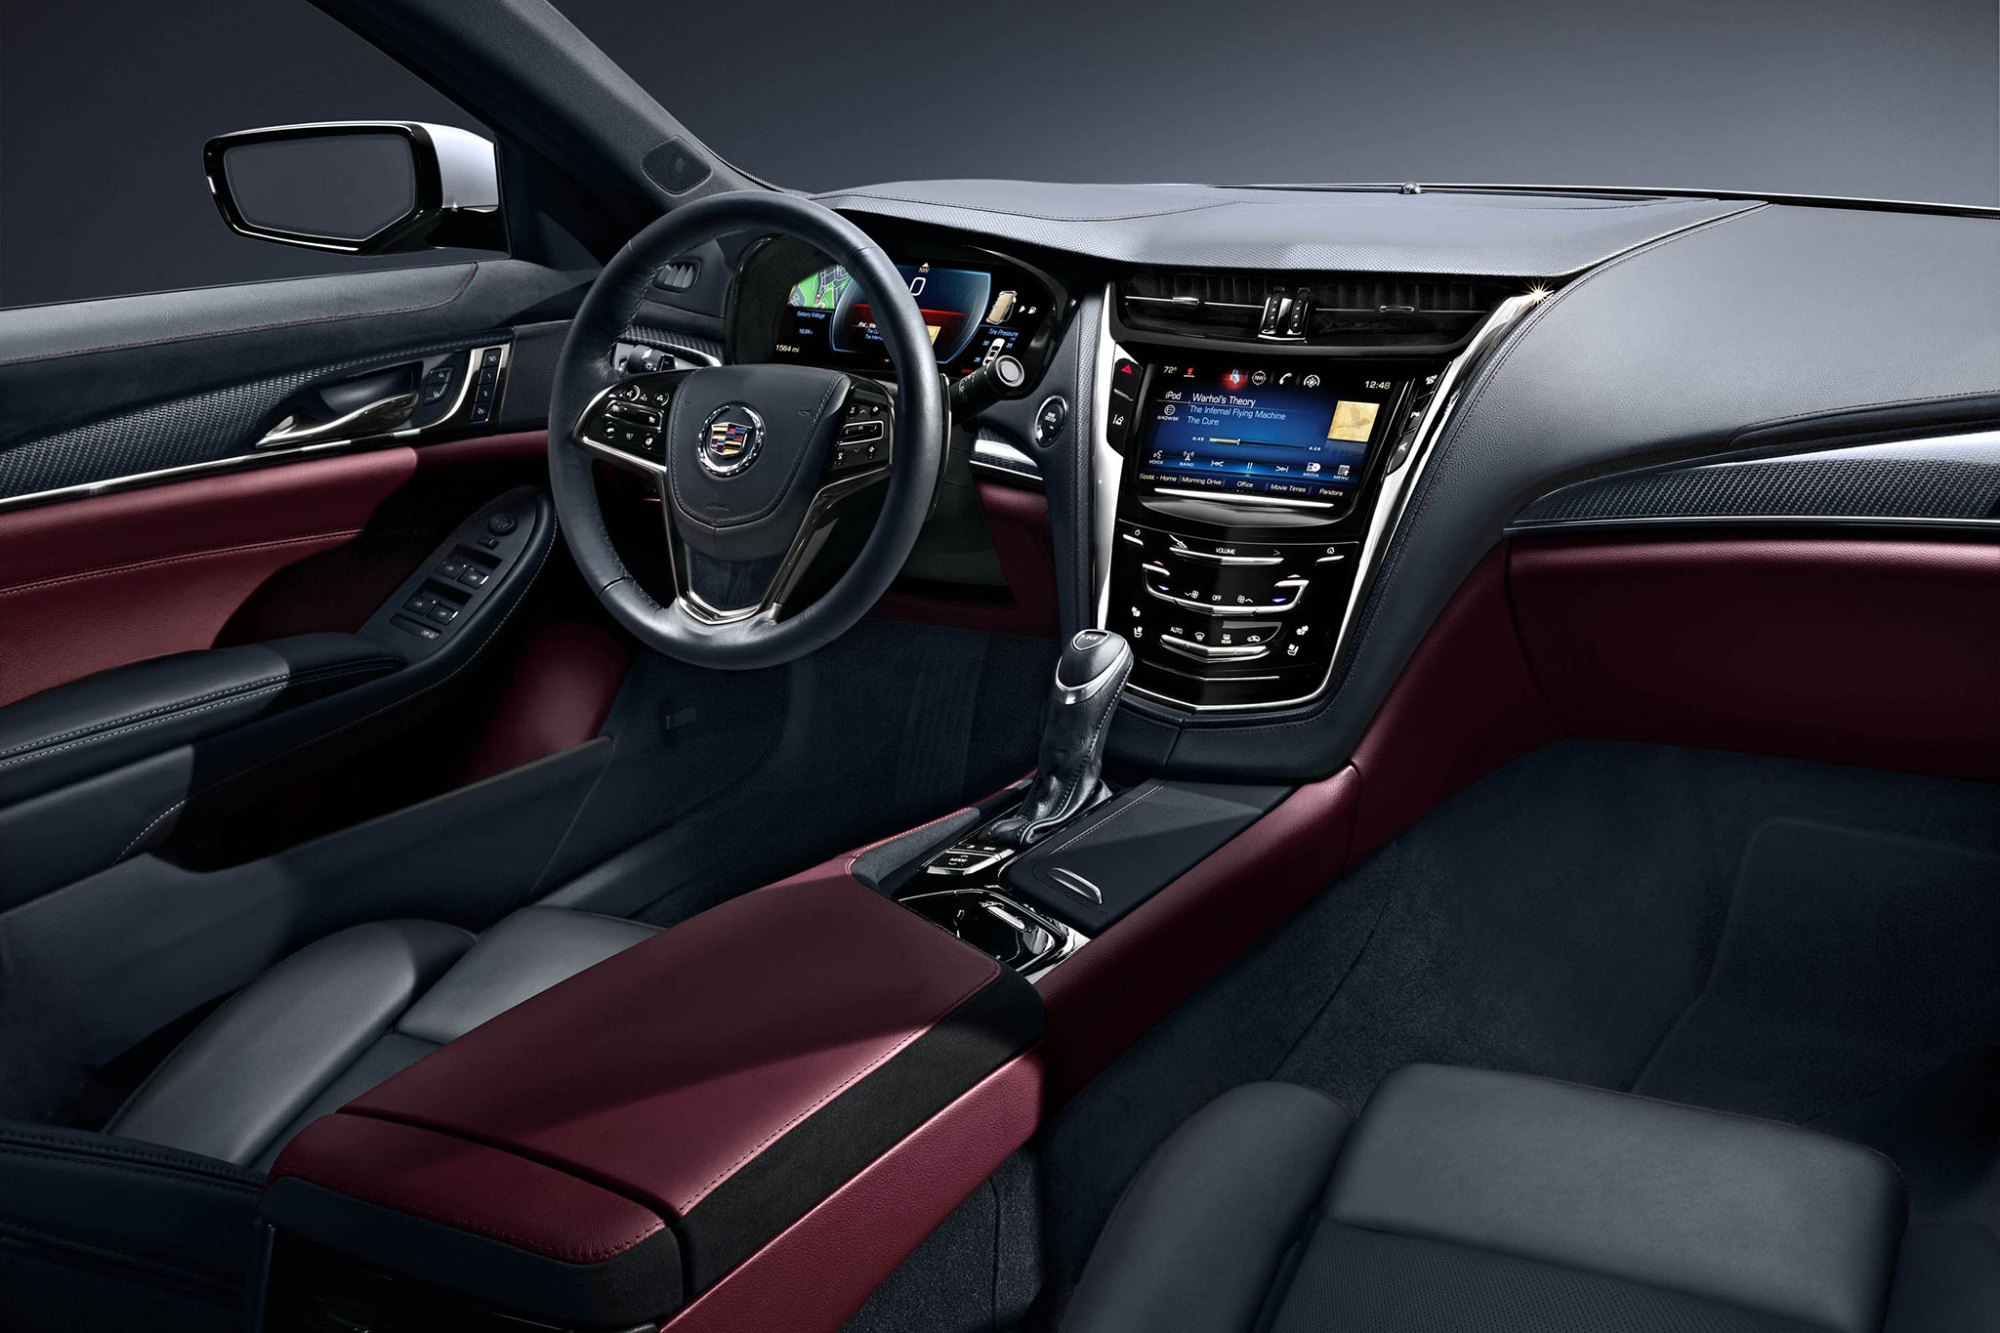 hight resolution of 2014 cadillac cts 15 222